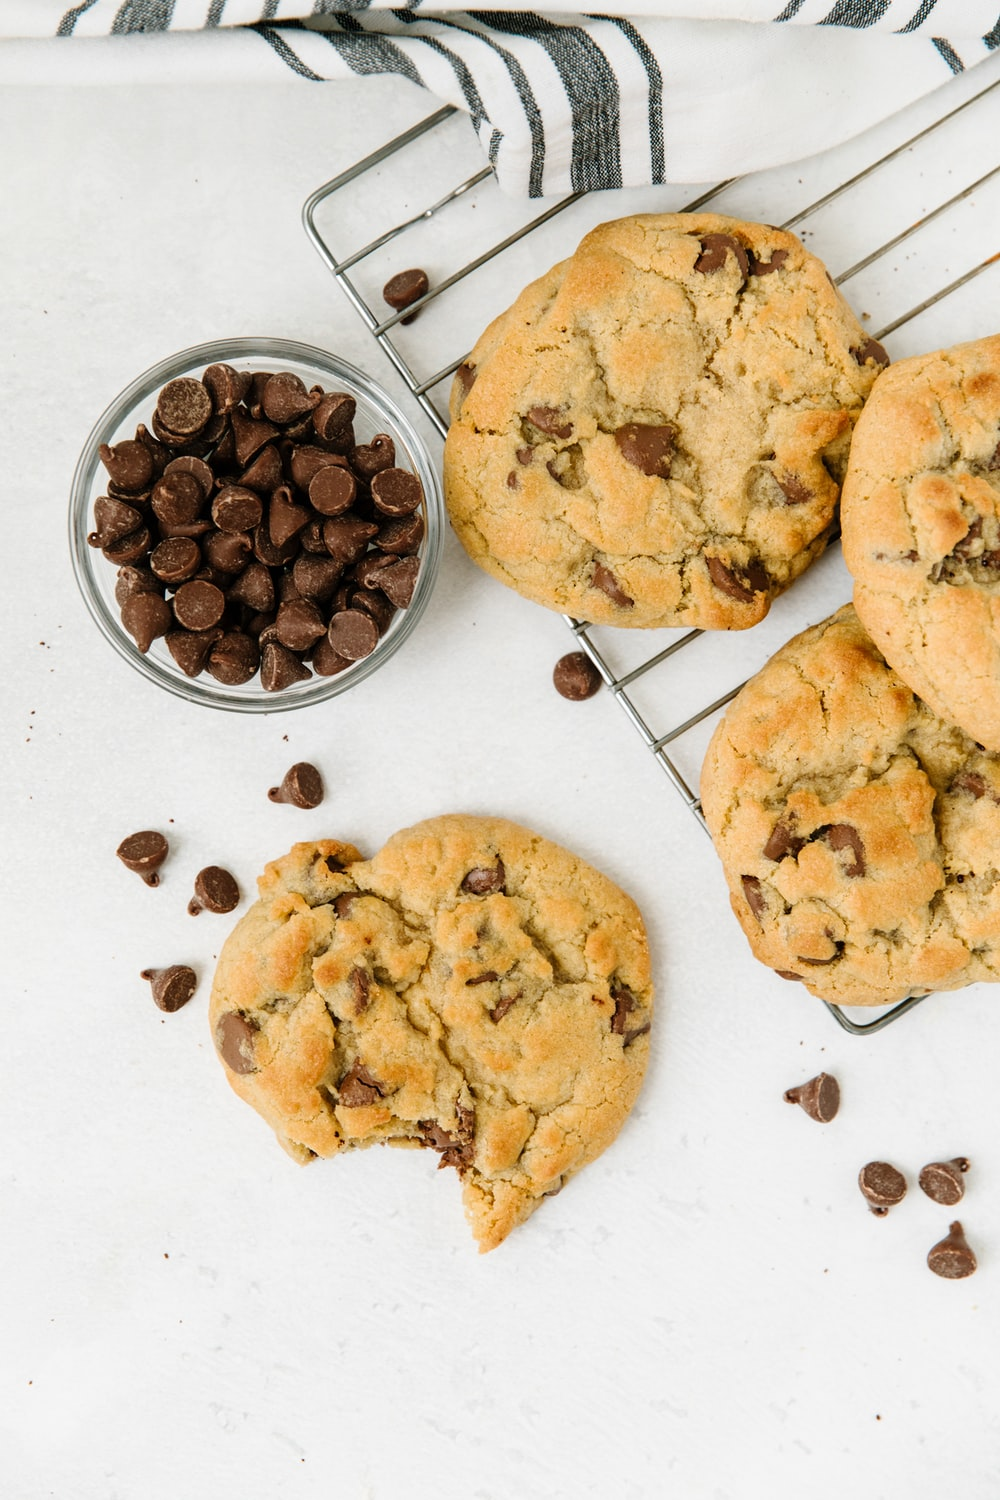 brown cookies on white ceramic plate